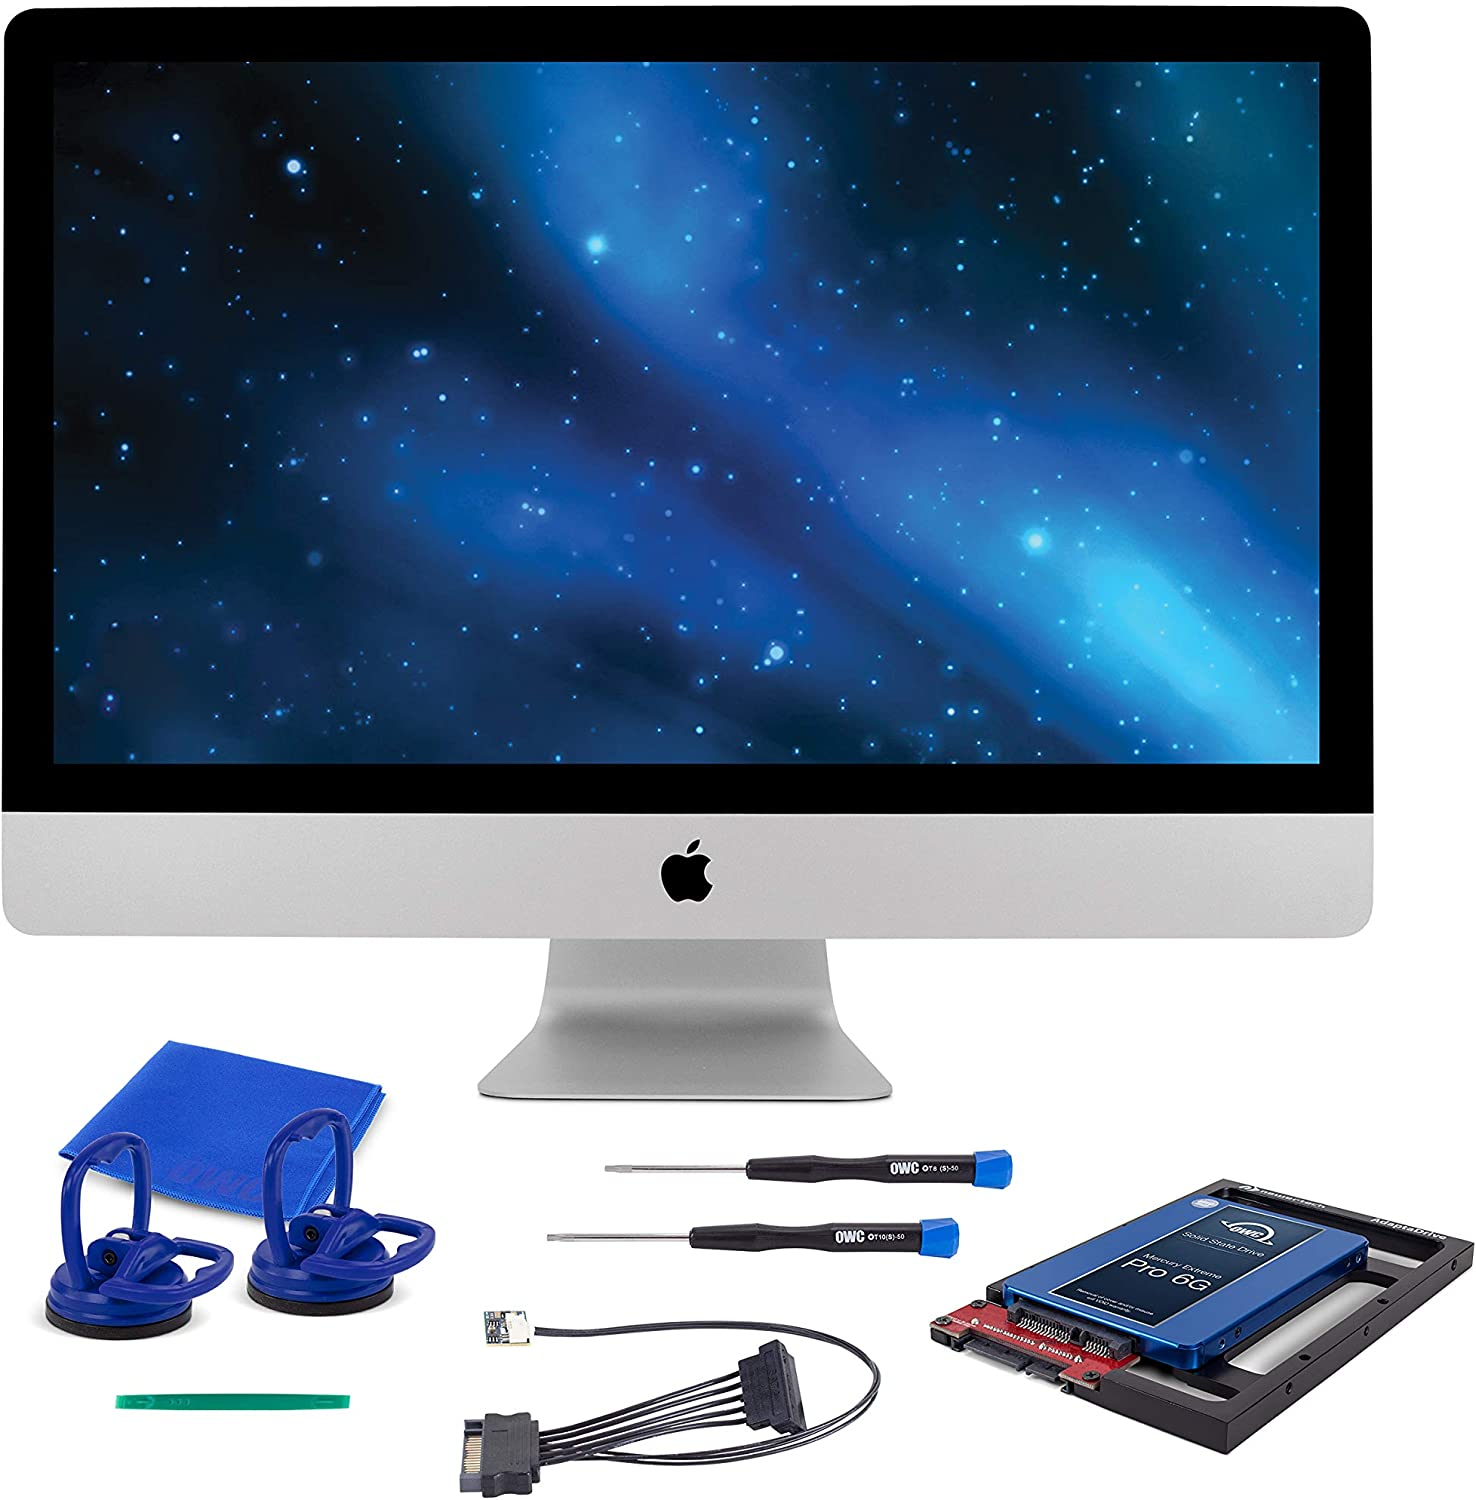 """OWC SSD Upgrade Bundle for 2011 iMacs, OWC Mercury Electra 250GB 6G SSD, AdaptaDrive 2.5"""" to 3.5"""" Drive Converter Bracket, in-line Digital Thermal Sensor Cable, Installation Tools, (OWCKITIM11HE250)"""